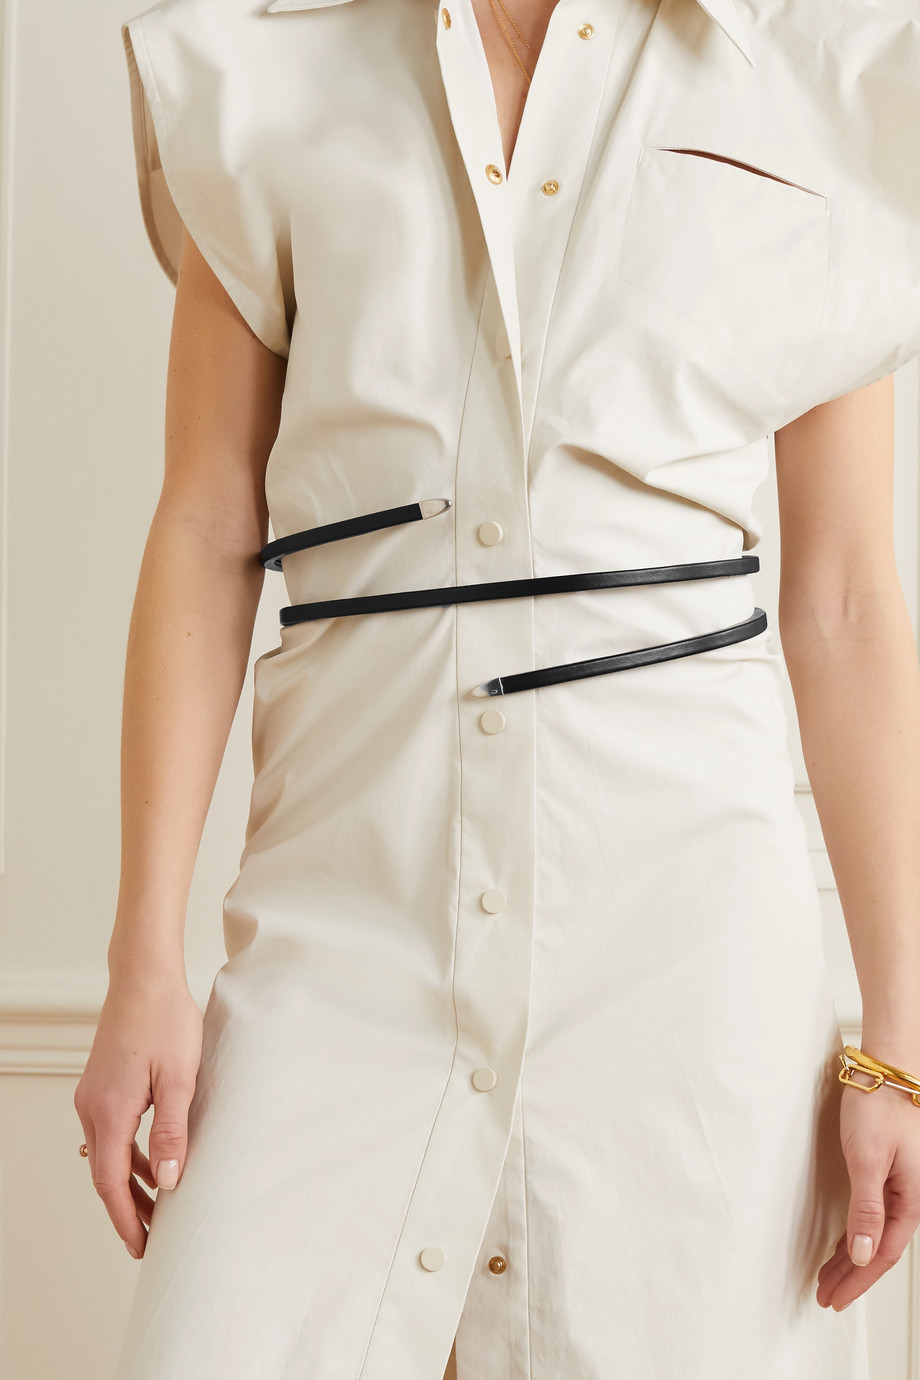 Bottega Veneta Leather waist belt